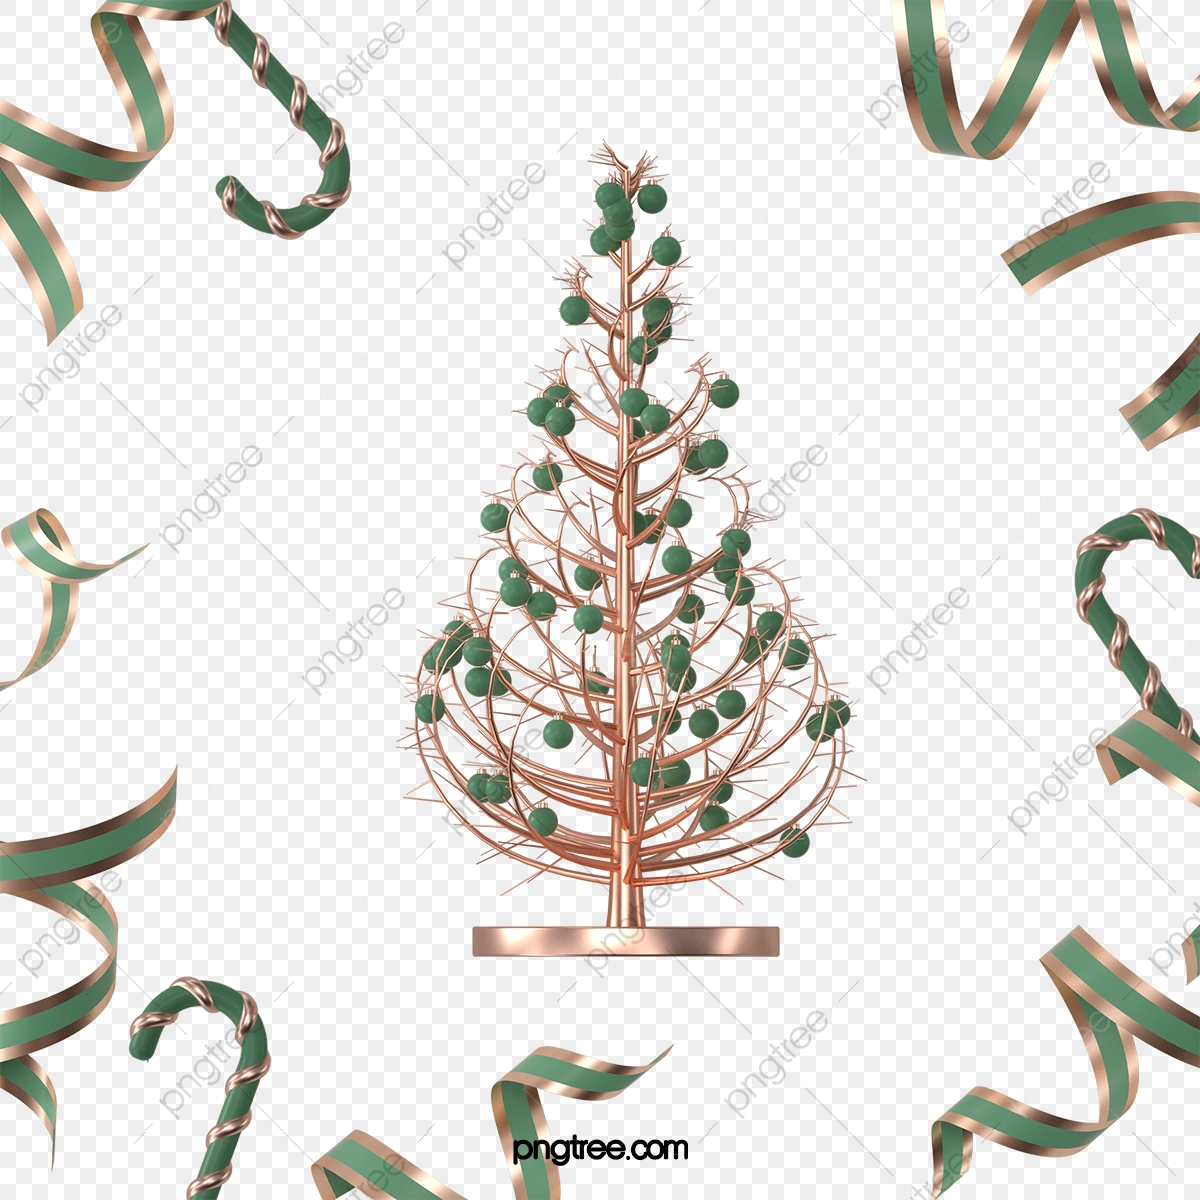 Three Dimensional Green Rose Gold Texture Three Dimensional Christmas Tree Shape Elements Stereoscopic Christmas Tree Christmas Png Transparent Clipart Image And Psd File For Free Download